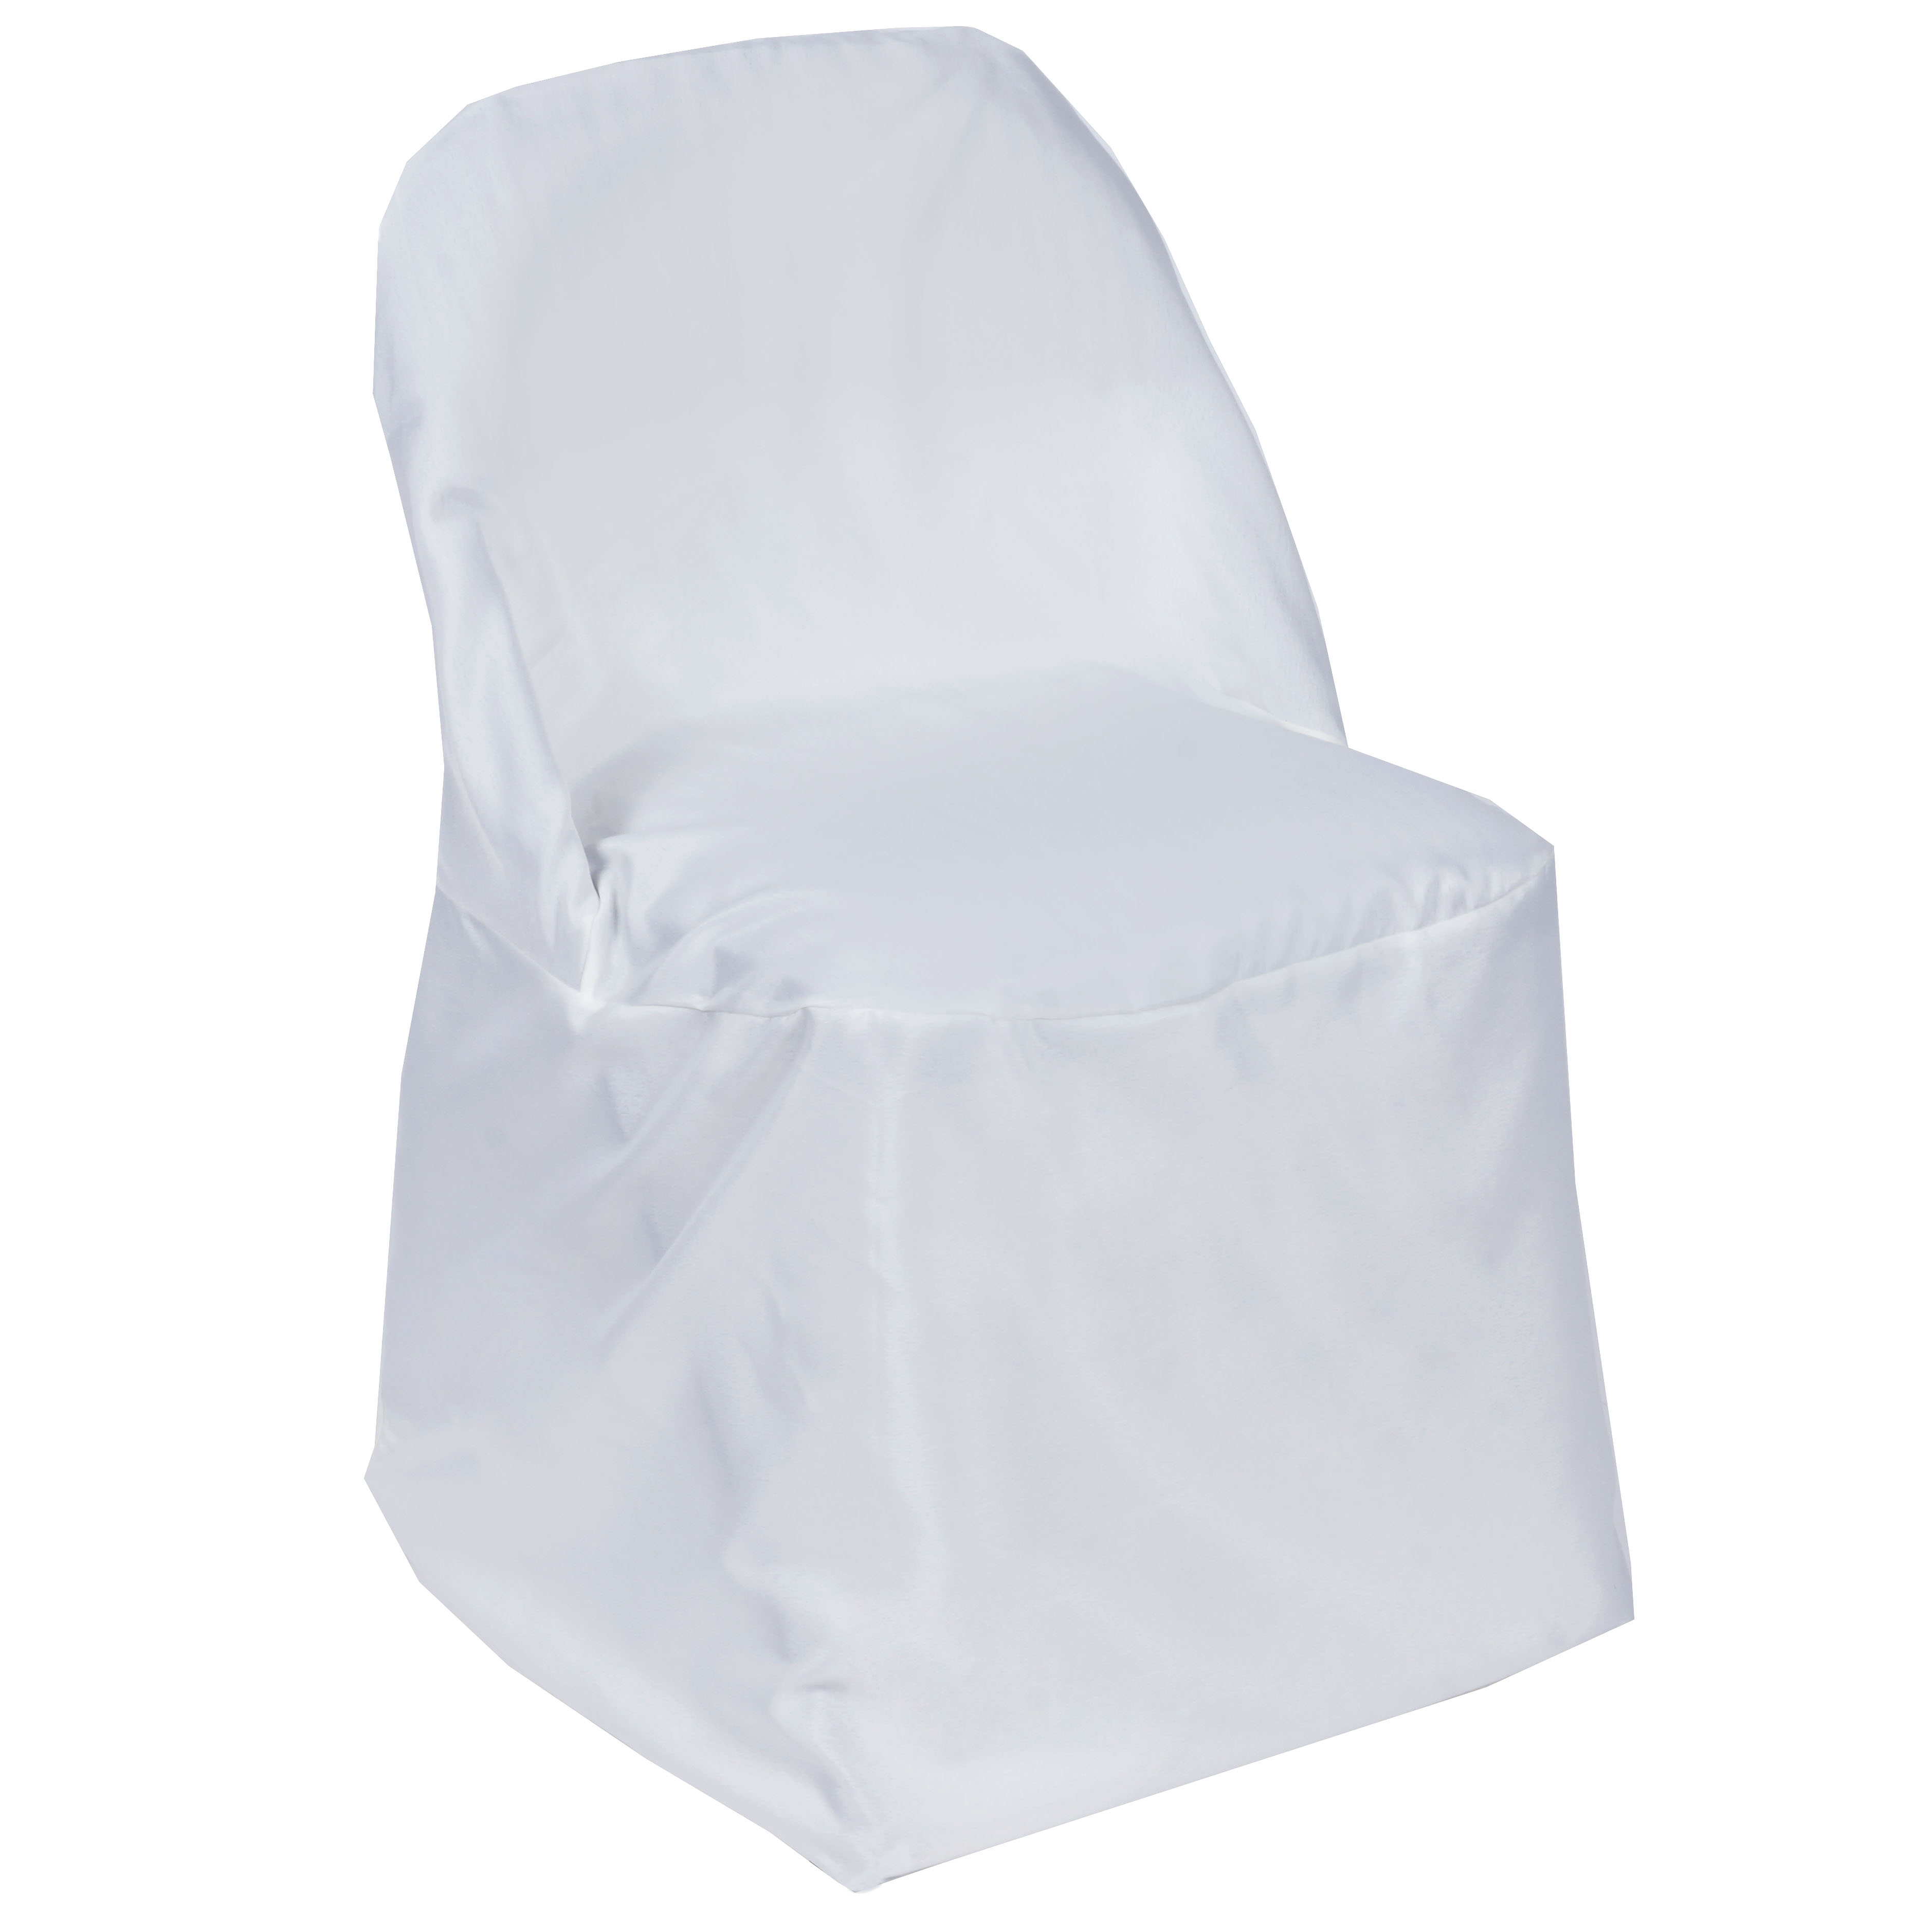 100 pcs POLYESTER ROUND FOLDING CHAIR COVERS Wholesale